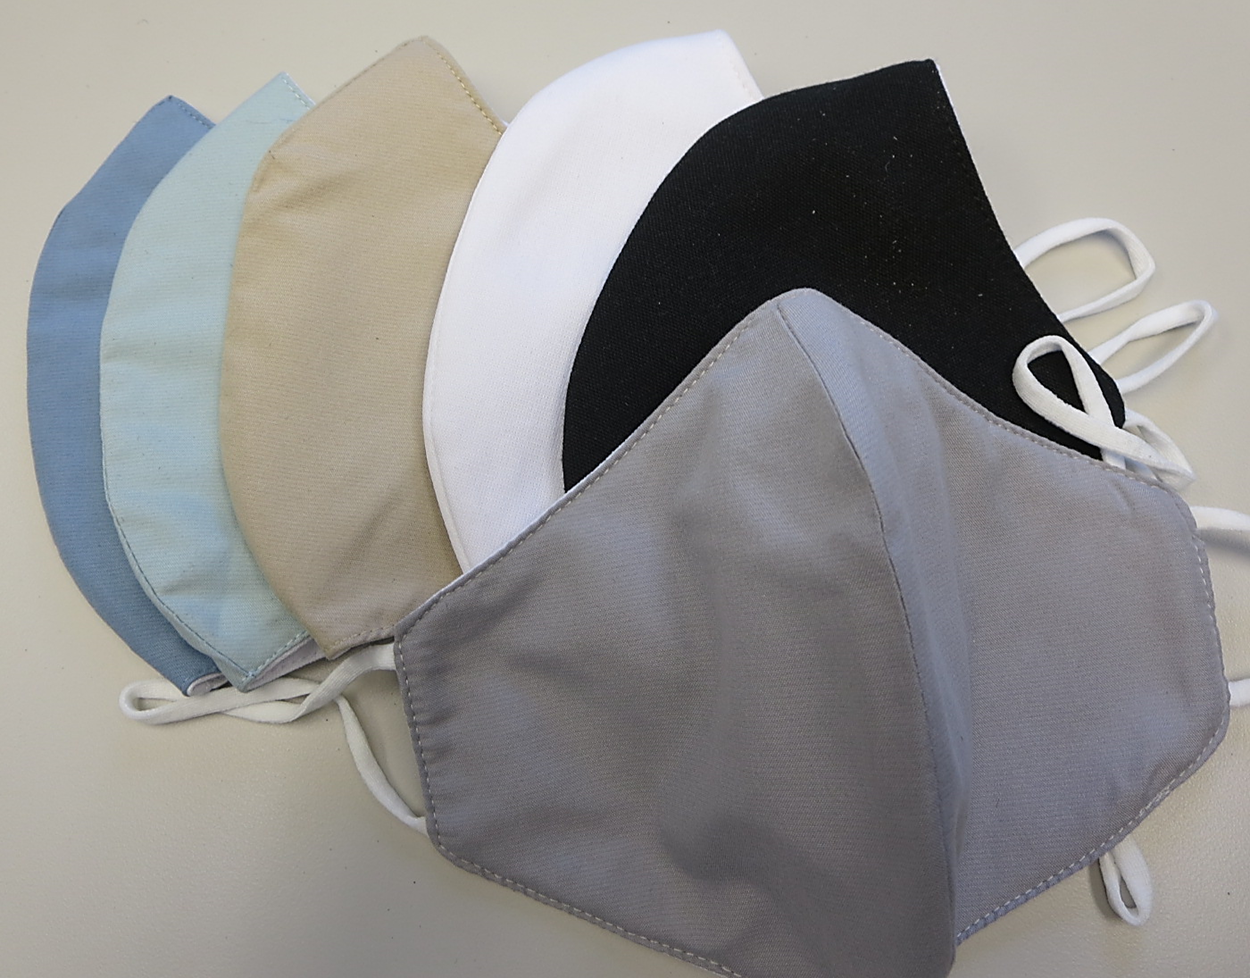 MX9501 Antibacterial Reusable Filtering Protective Mask - Assorted Colors